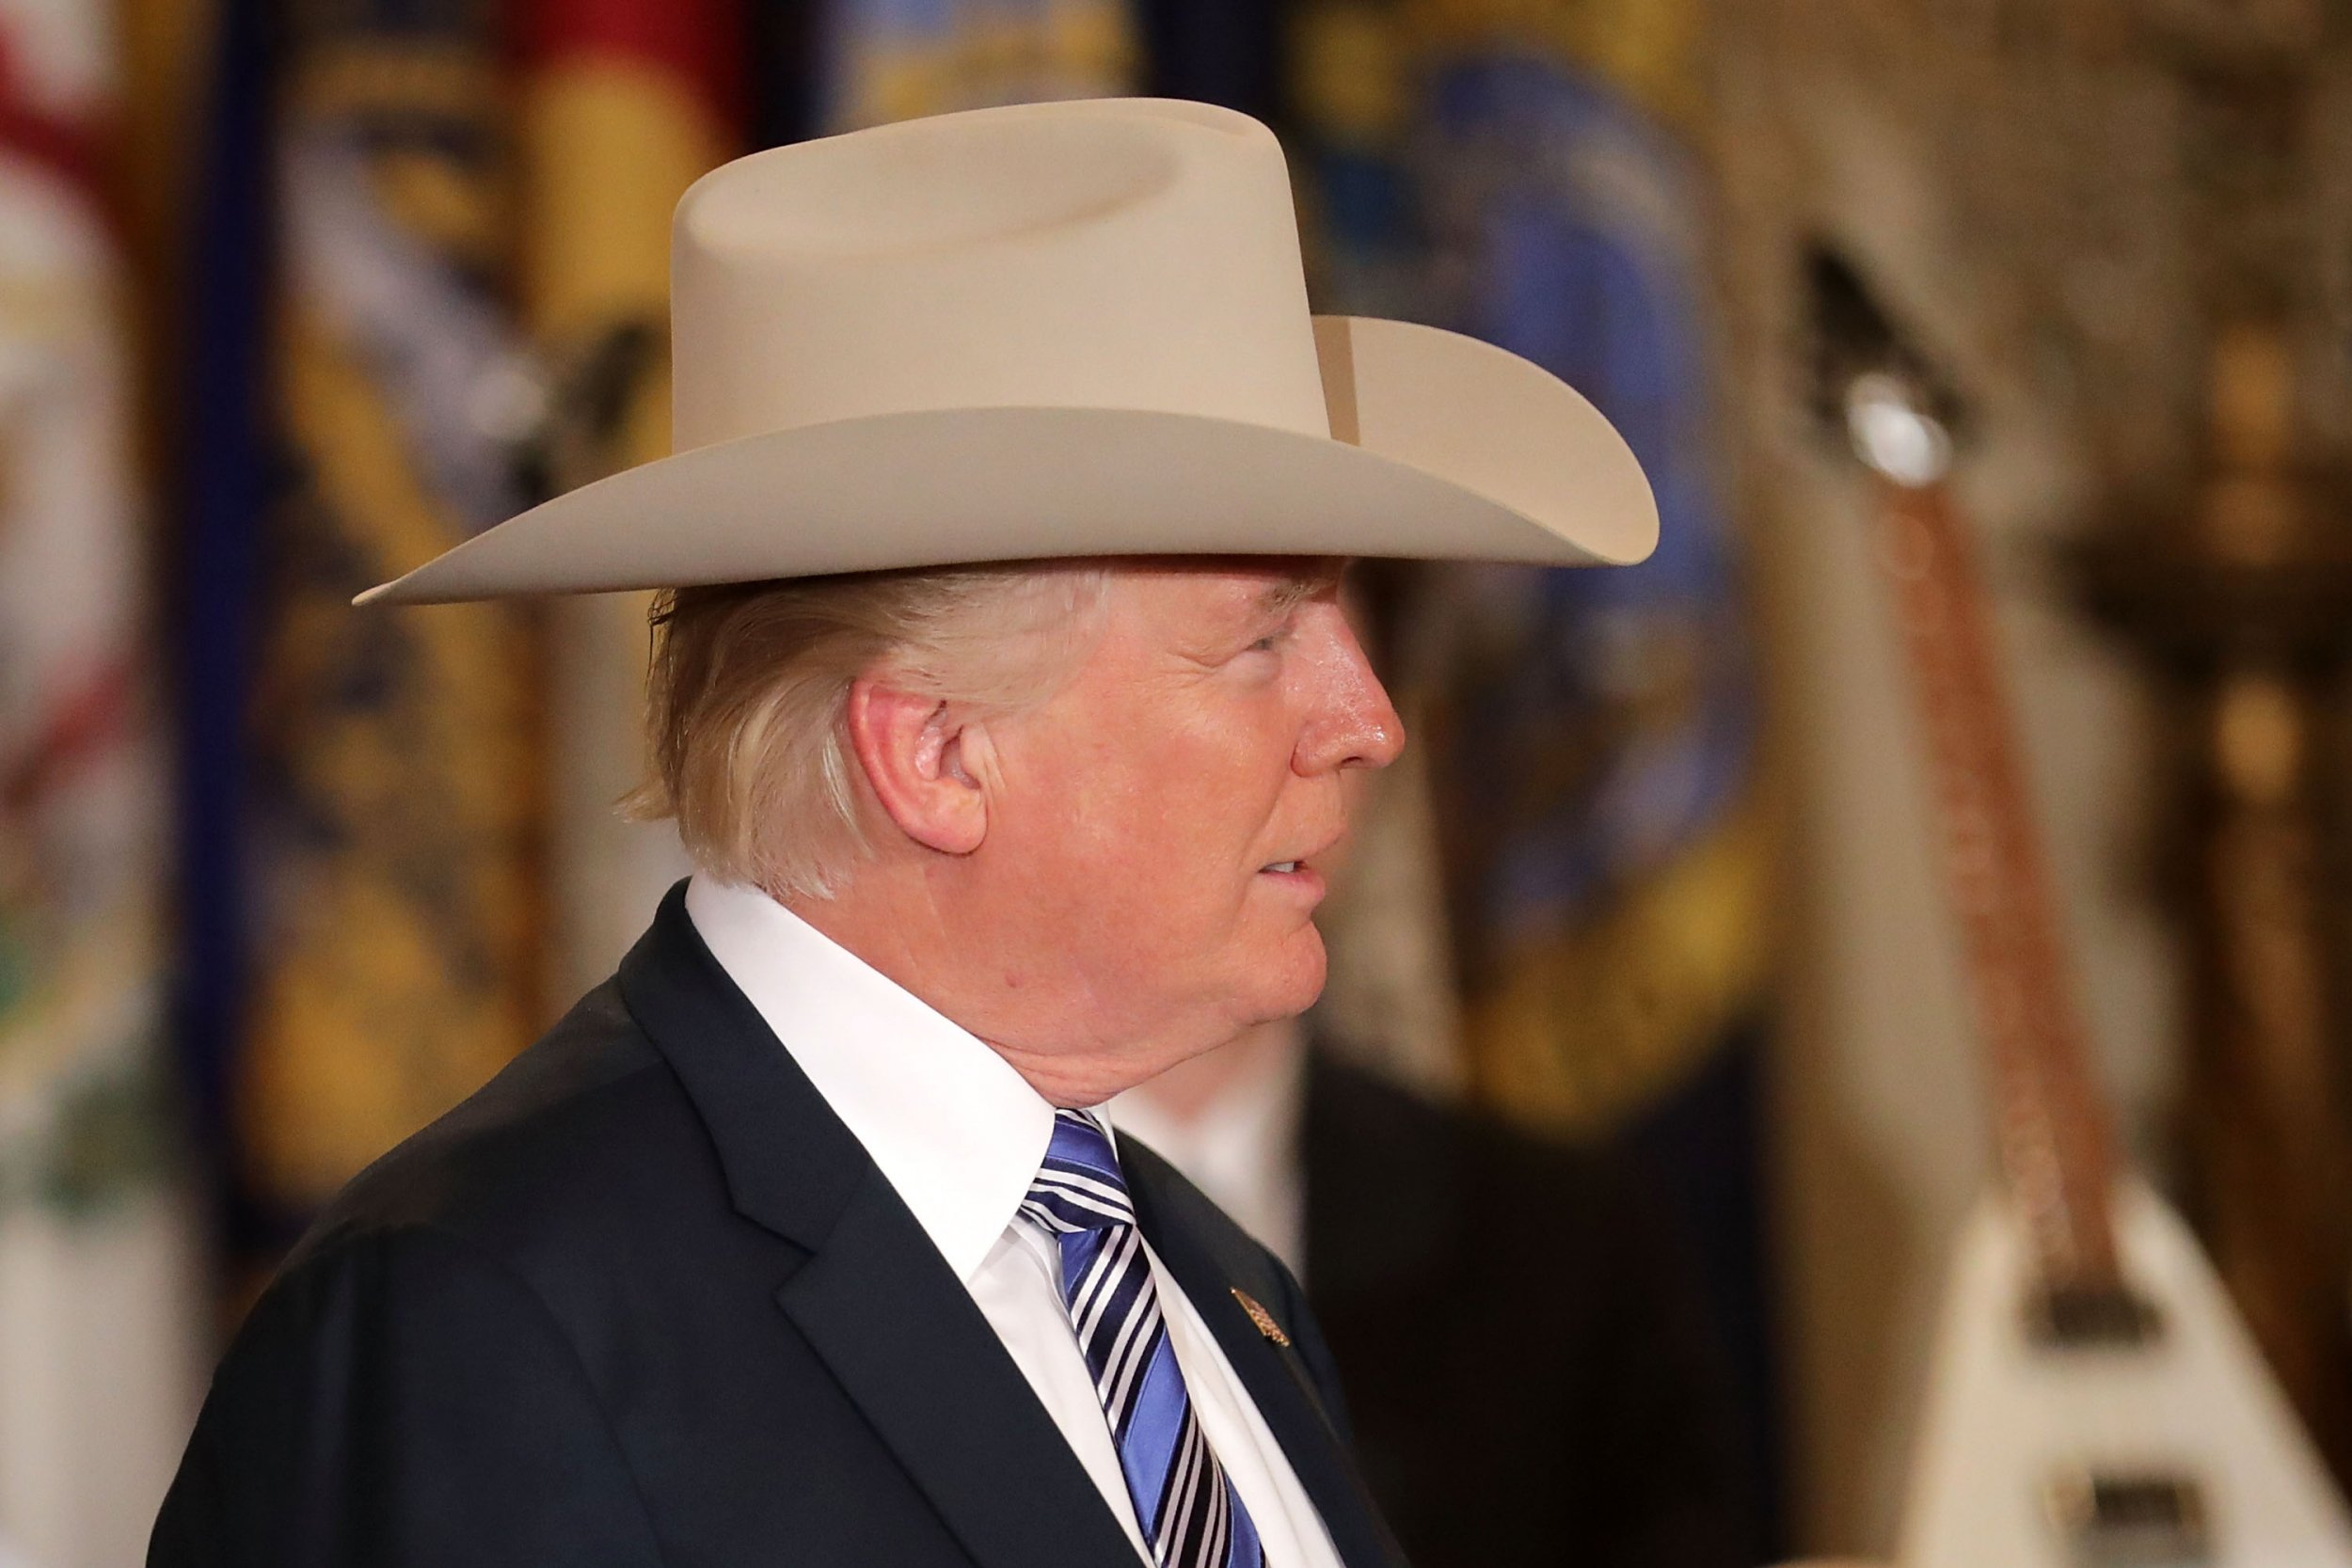 trump in a hat